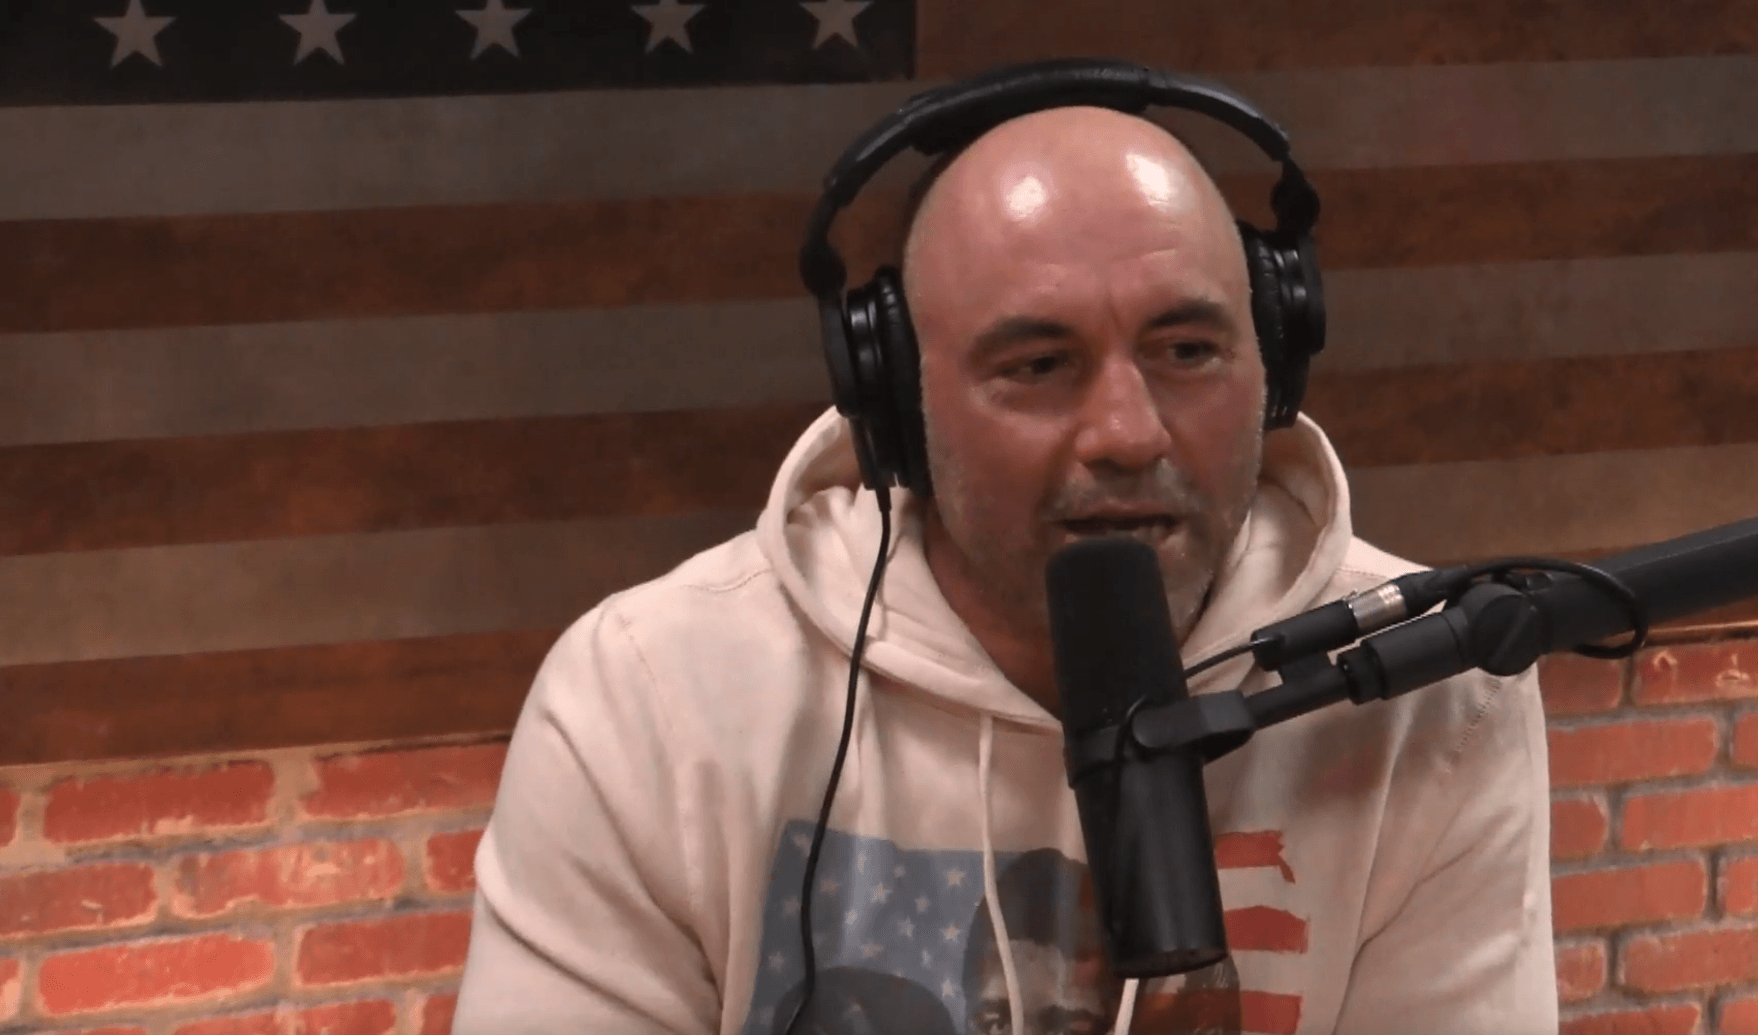 Joe Rogan's podcast moves to Spotify, will remain the same